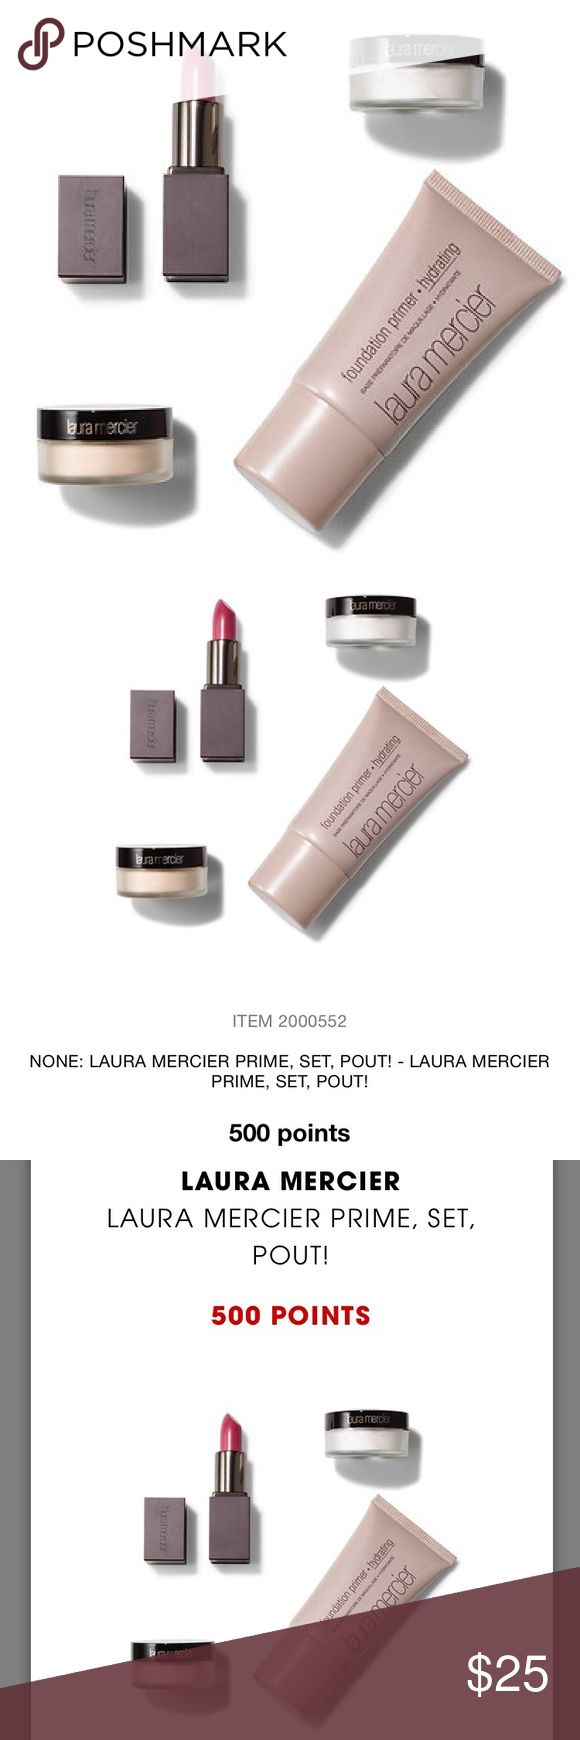 LAURA MERCIER PRIME, SET, POUT | 500 Point Reward LAURA MERCIER | PRIME, SET, POUT 500 point reward from Sephora  Create your everyday look with classic Laura Mercier bestsellers, featuring Laura Mercier Foundation Primer – Hydrating, Translucent Loose Setting Powder, and Secret Brightening Power.  This includes: + 1 oz/ 30 mL Laura Mercier Foundation Primer - Hydrating + 0.12 oz/ 3.5 g Laura Mercier Translucent Loose Setting Powder + 0.03 oz/ 1 g Laura Mercier Secret Brightening Powder…